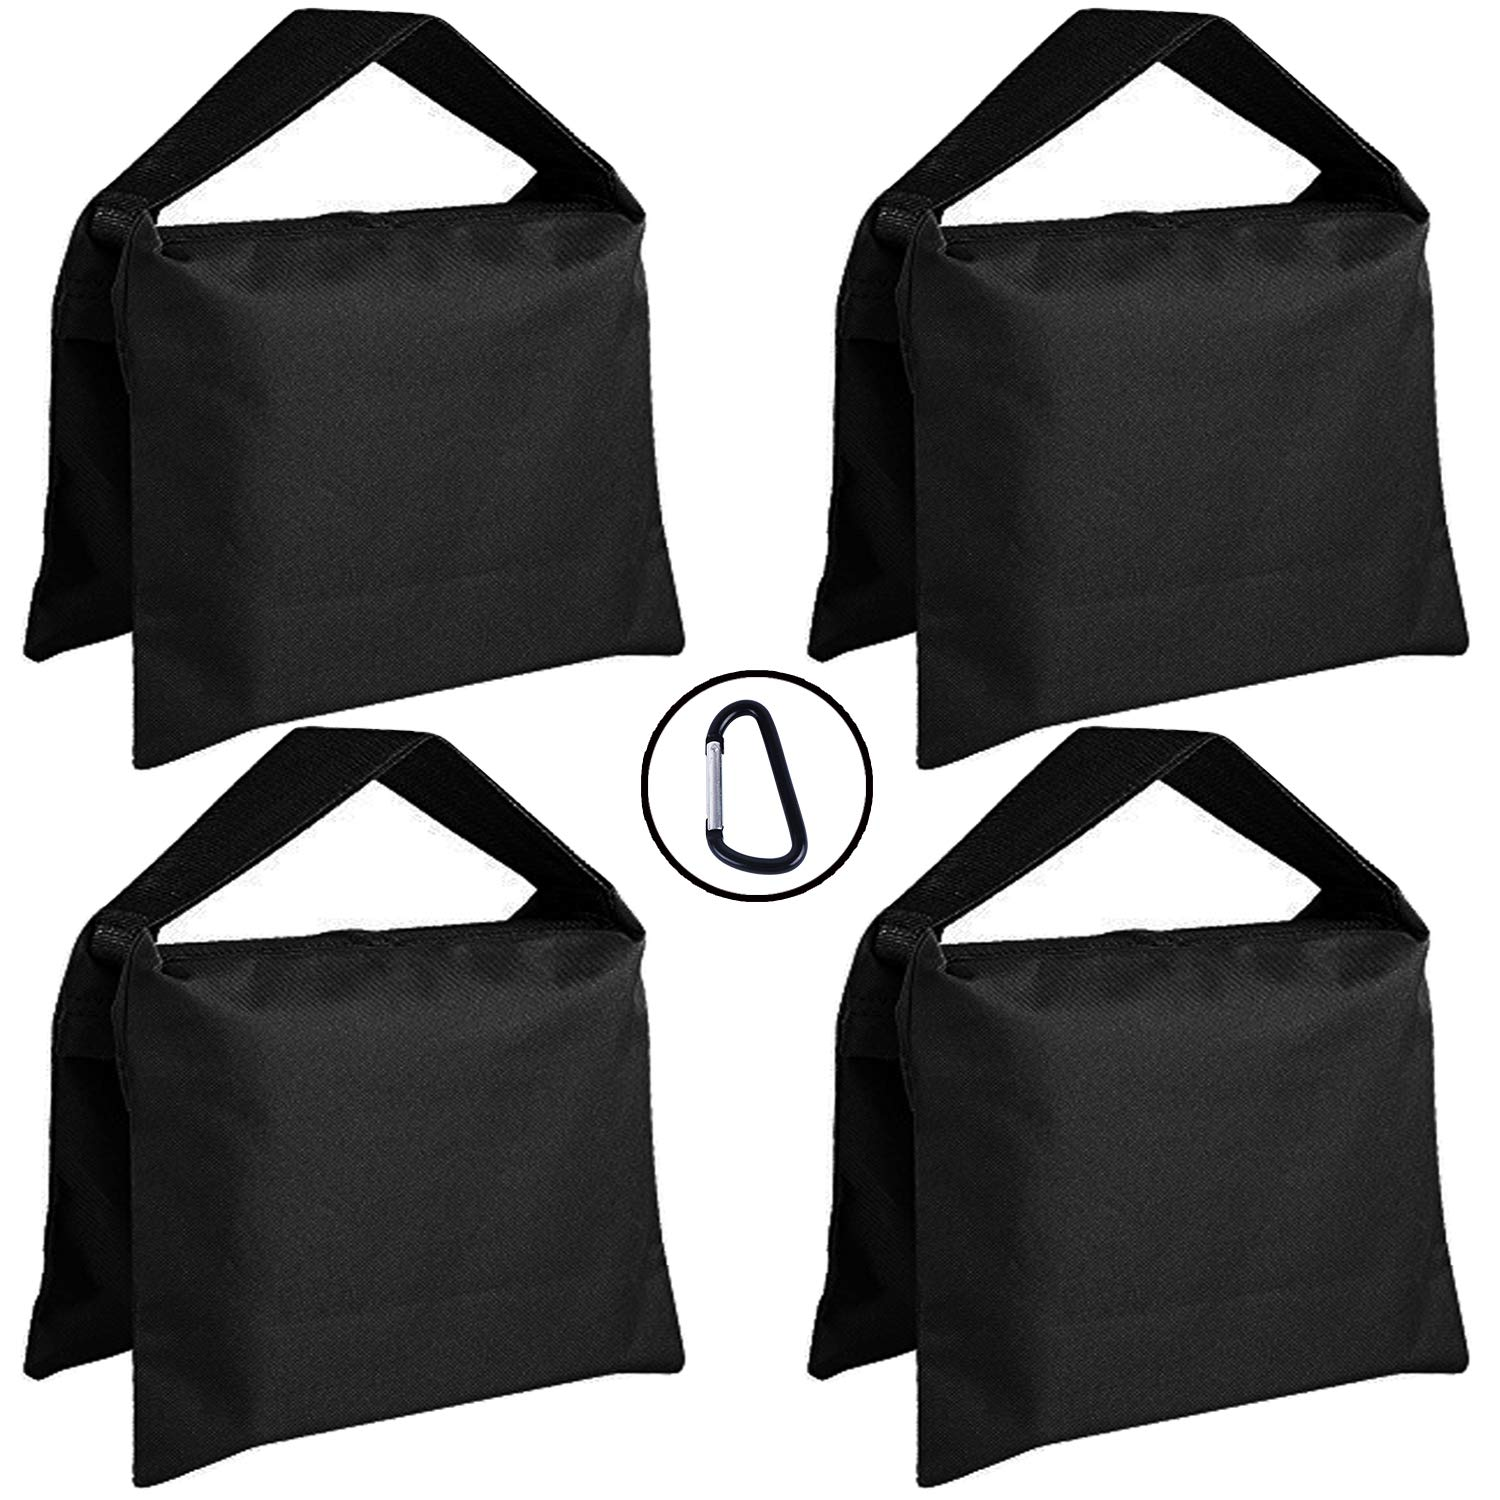 Super Heavy Duty ABCCANOPY Sandbag Saddlebag Design 4 Weight Bags for Photo Video Studio Stand,Backyard,Outdoor Patio,Sports (Black) by ABCCANOPY